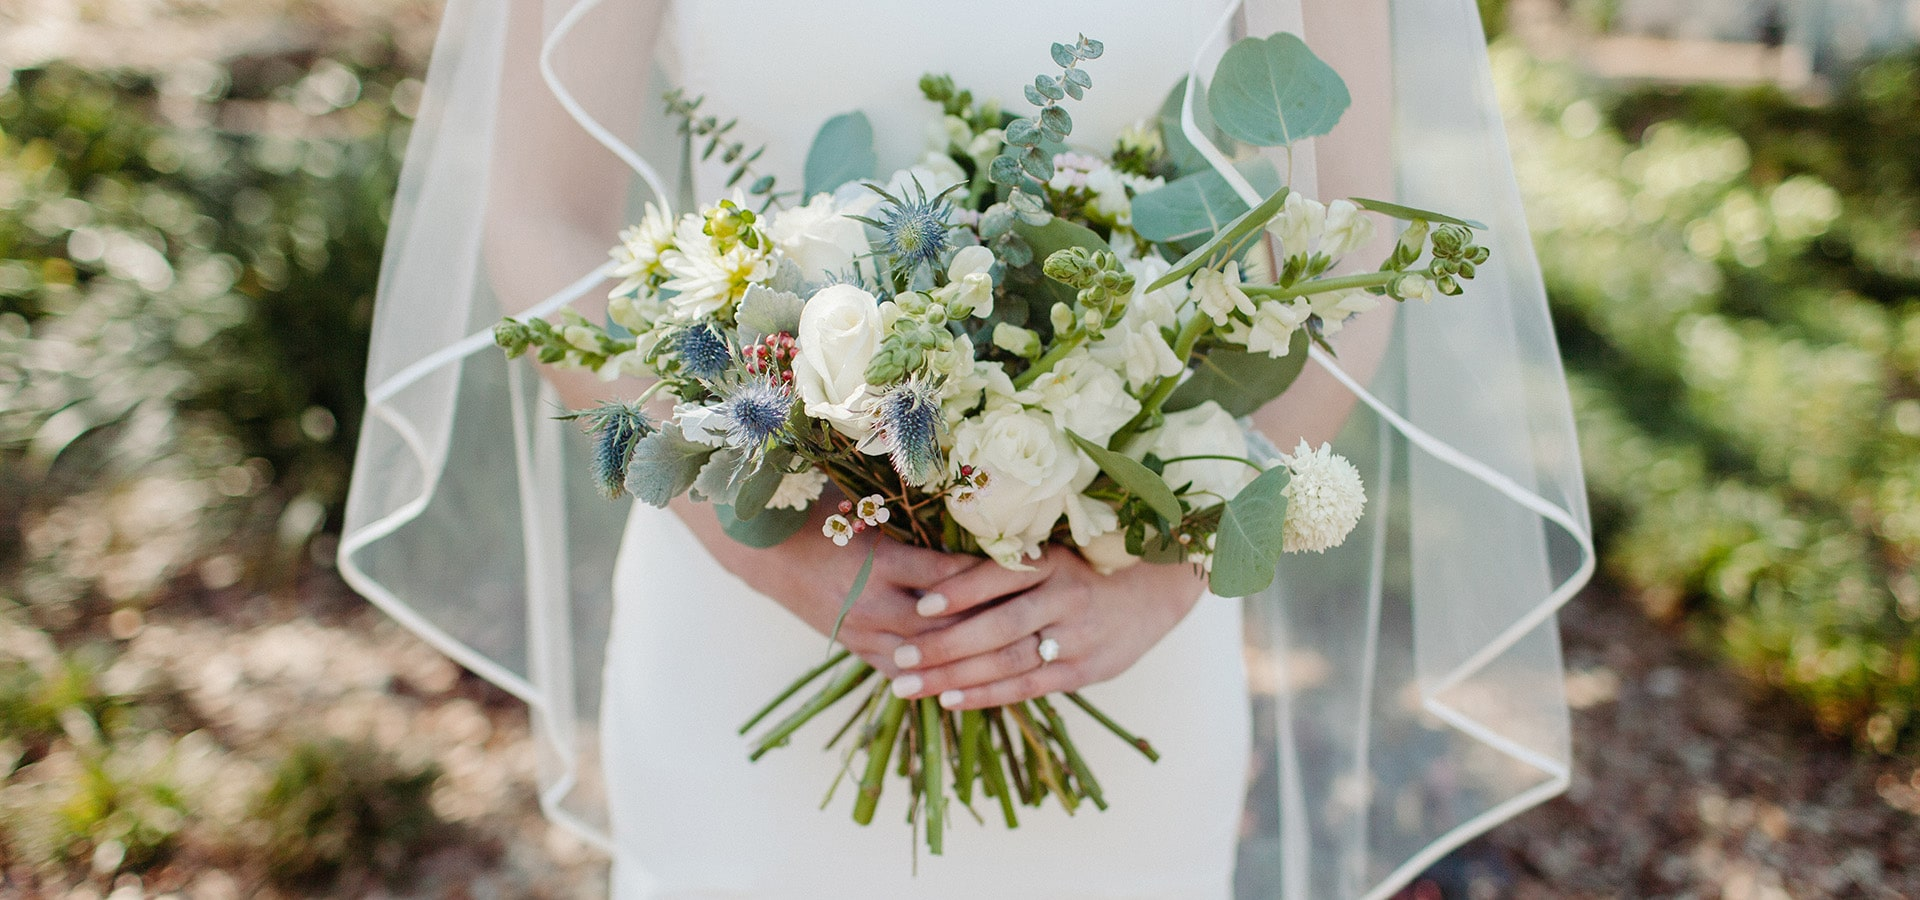 Hero image for How to DIY Your Own Wedding Bouquet